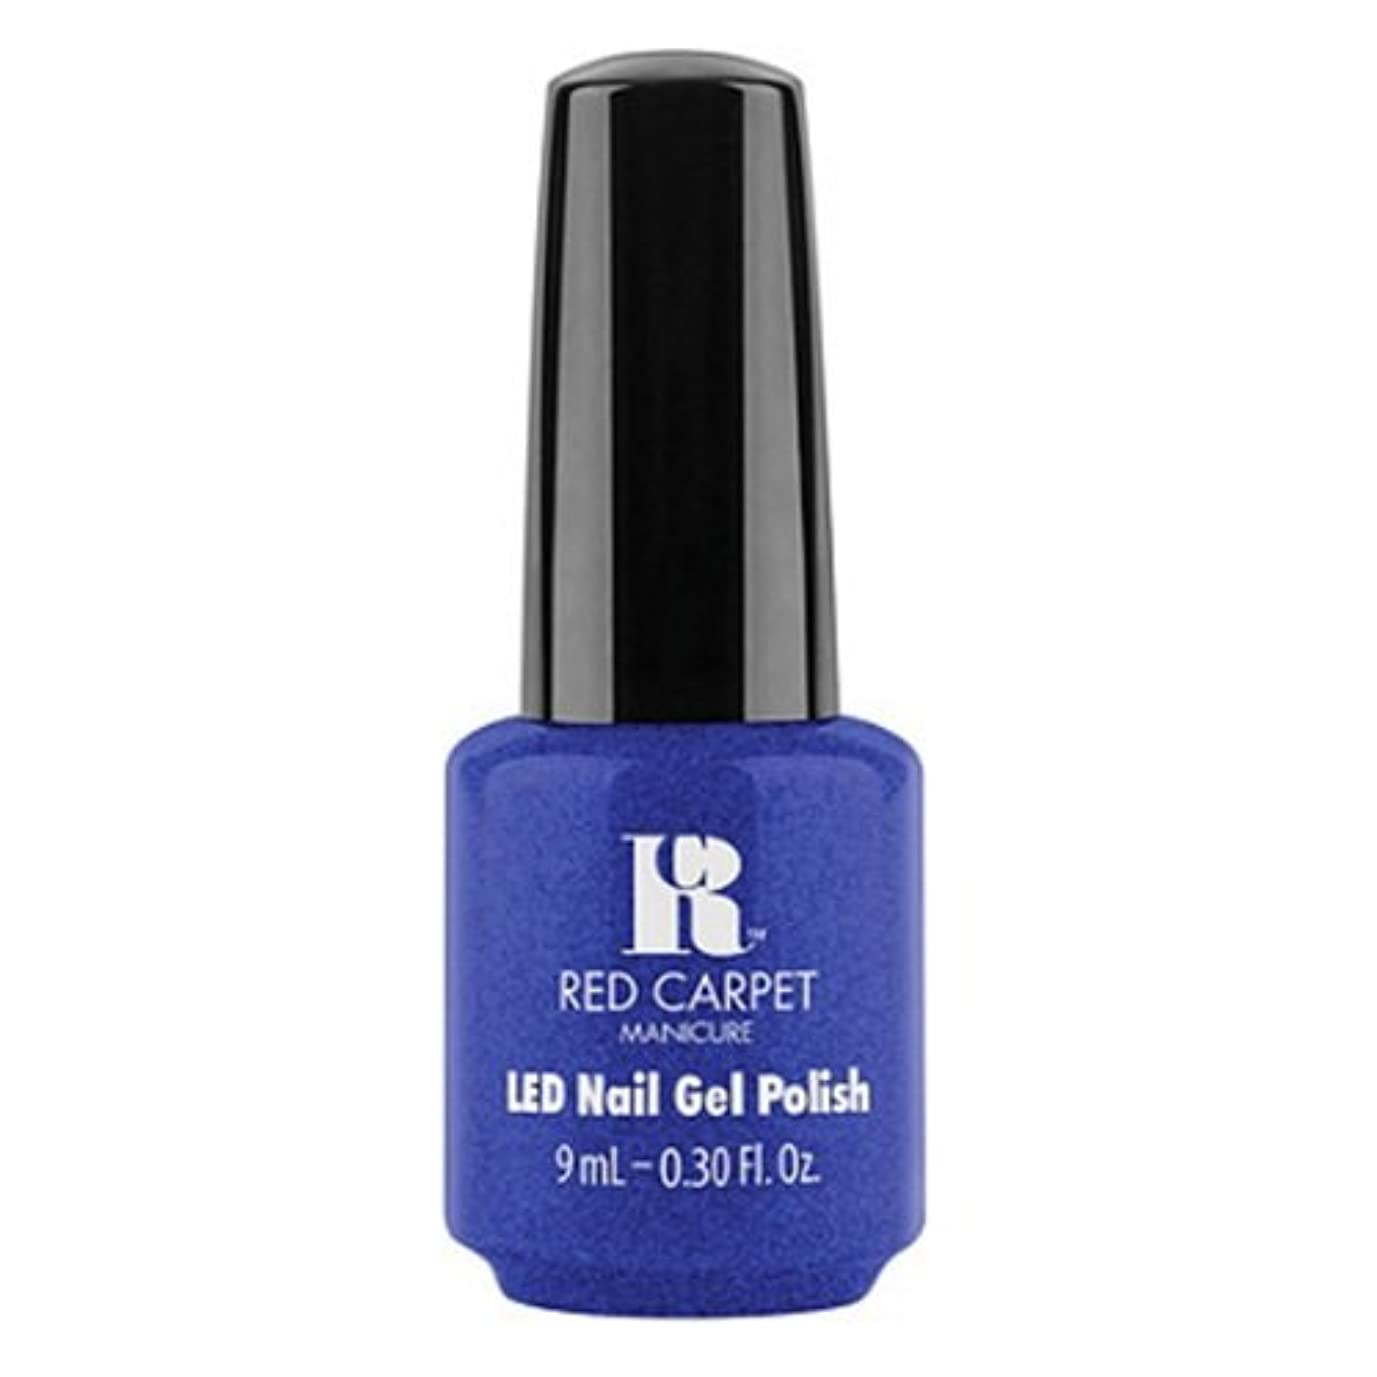 Red Carpet Manicure - LED Nail Gel Polish - Trendiest of Them All - 0.3oz / 9ml